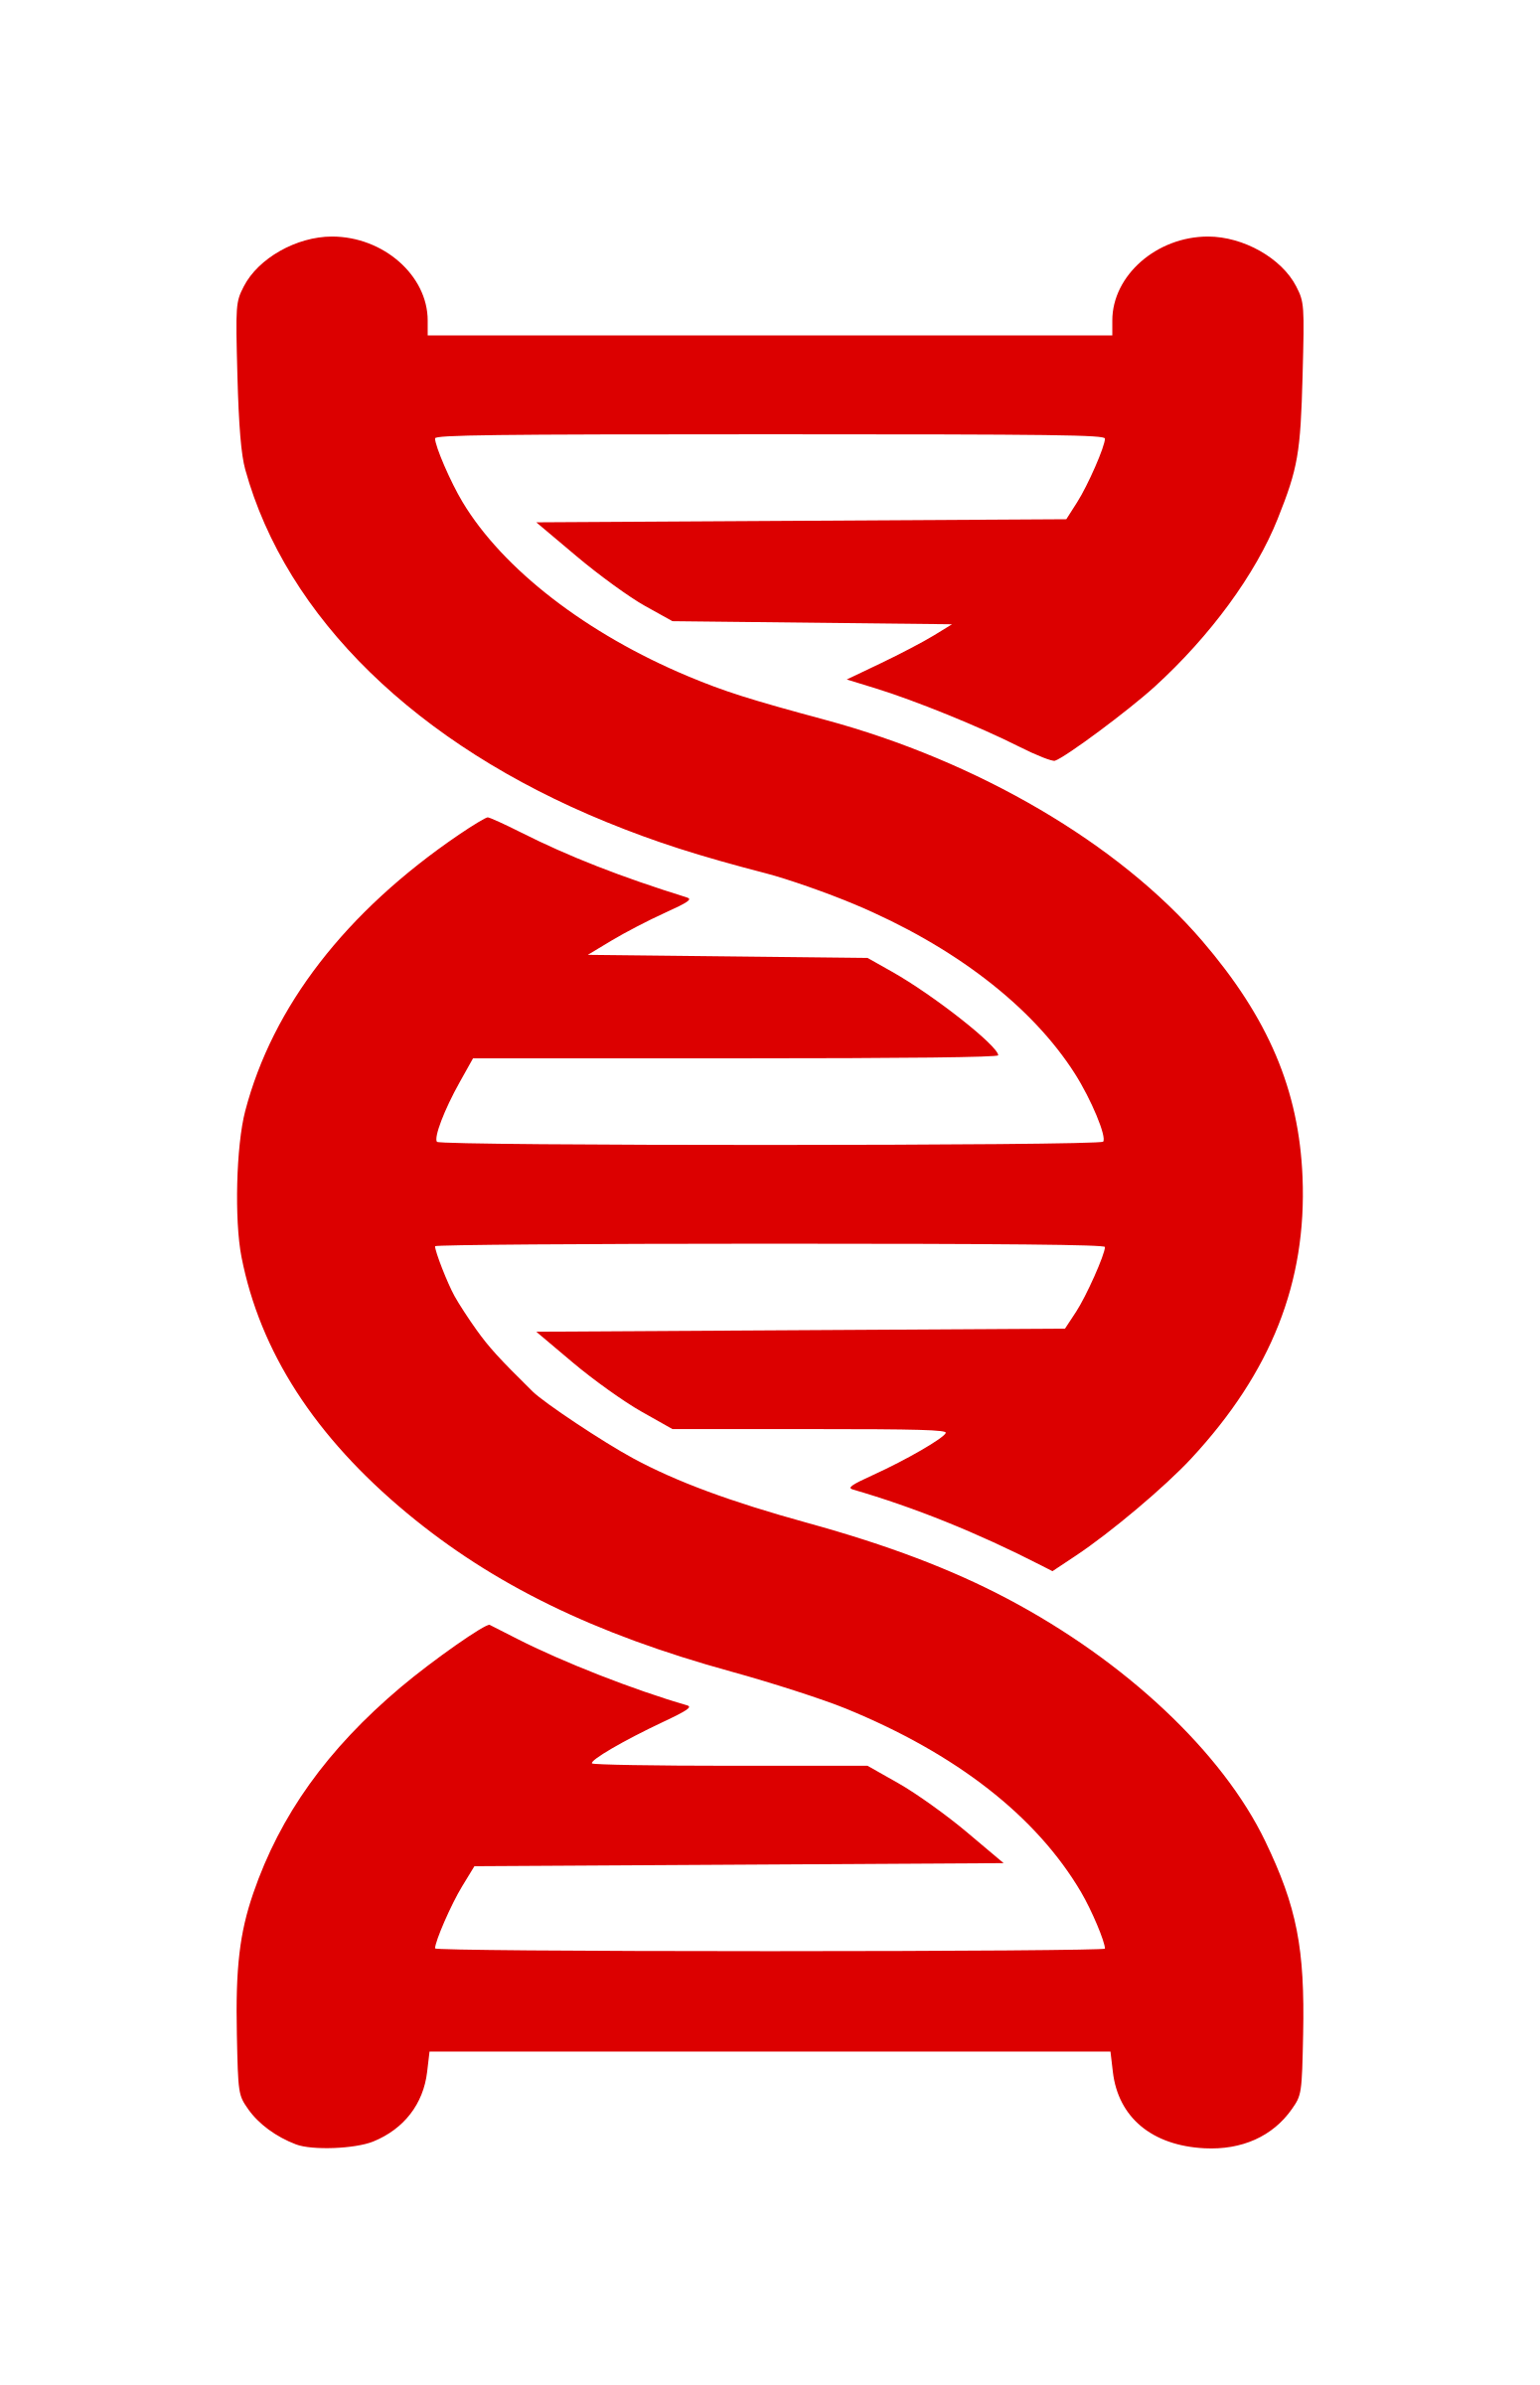 Vertical vector dna strand. Clipart icon big image